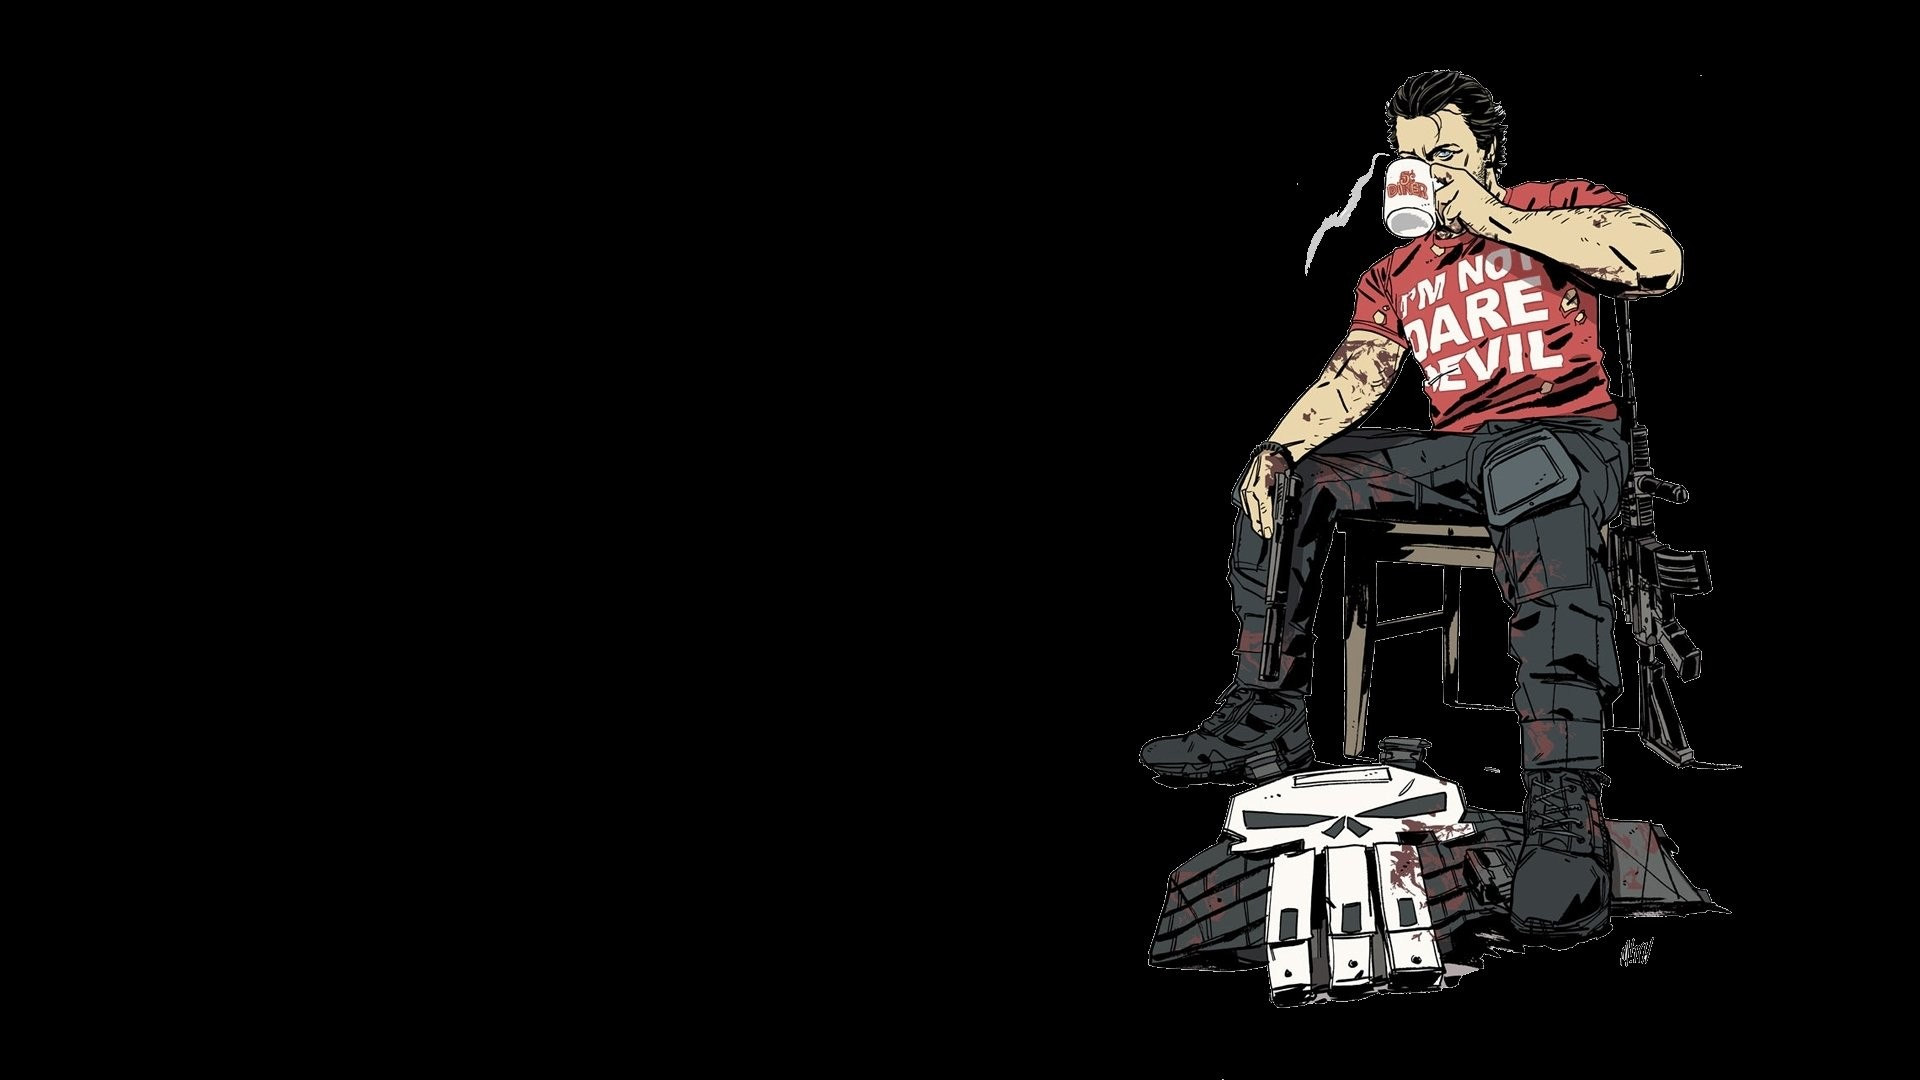 1920x1080 Comics - Punisher Wallpaper